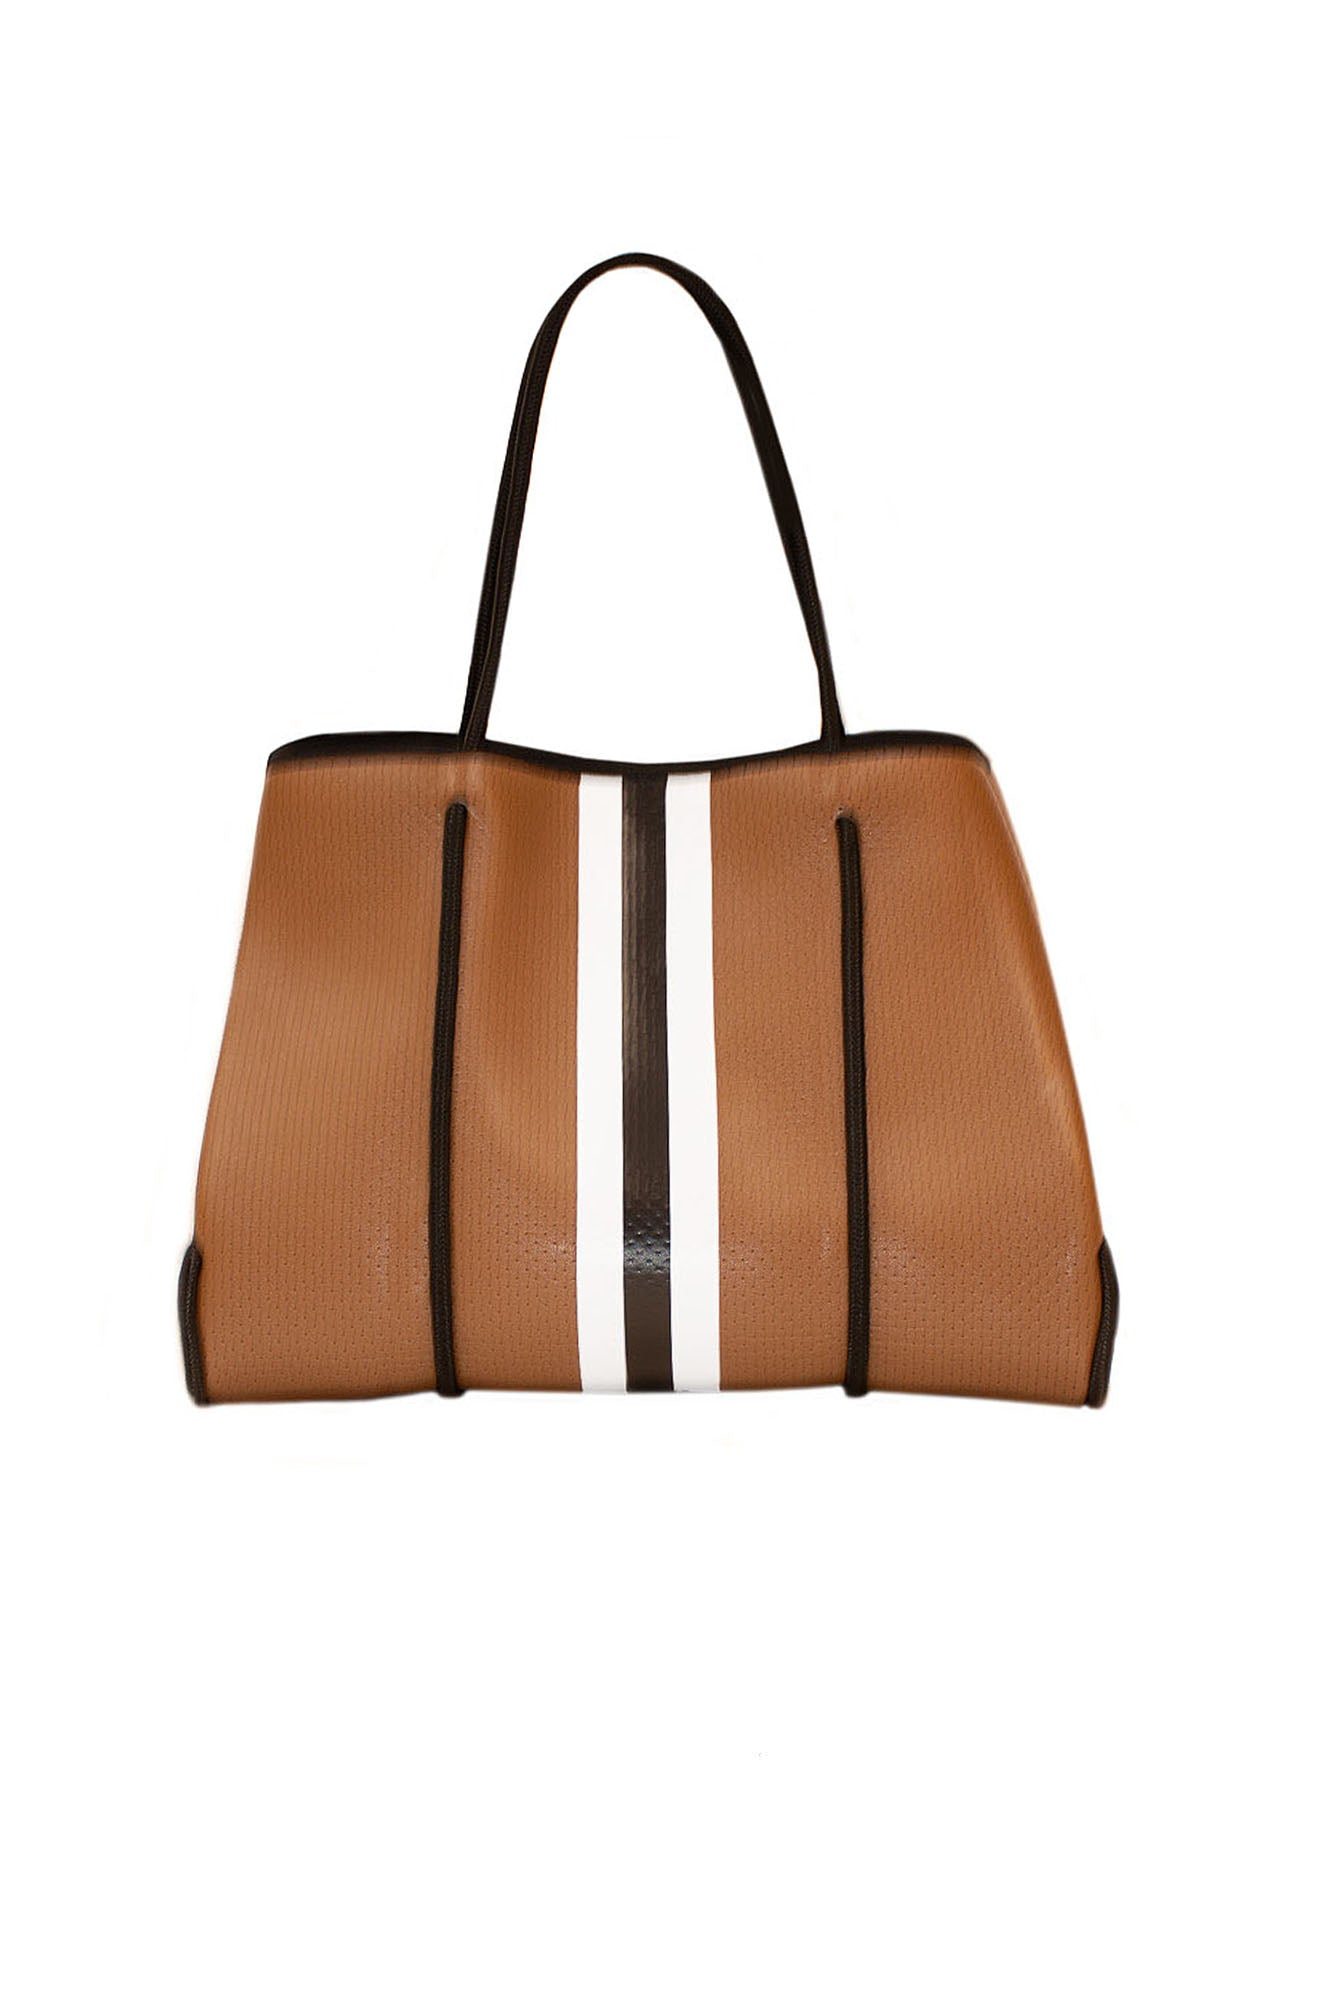 Haute Shore - Greyson Naples Neoprene Tote Bag w/Zipper Wristlet Inside (NAPLES, Saddle Brown w/Black & White Stripe)